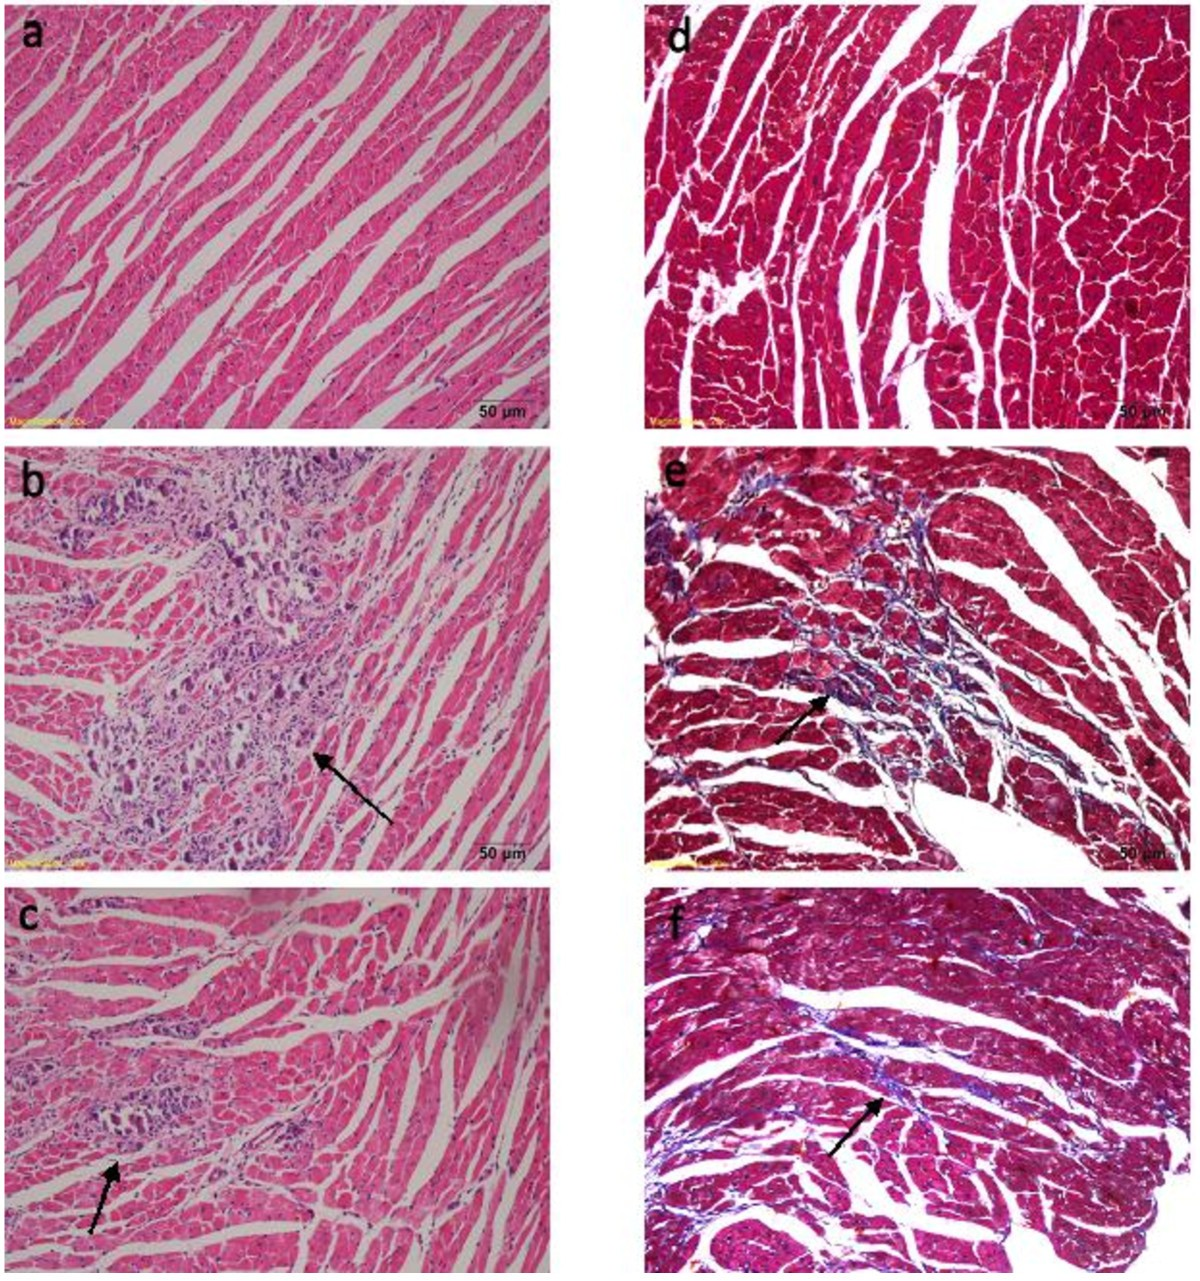 Effects Of Carvedilol Treatment On Cardiac Camp Response Element Binding Protein Expression And Phosphorylation In Acute Coxsackievirus B3 Induced Myocarditis Bmc Cardiovascular Disorders Full Text